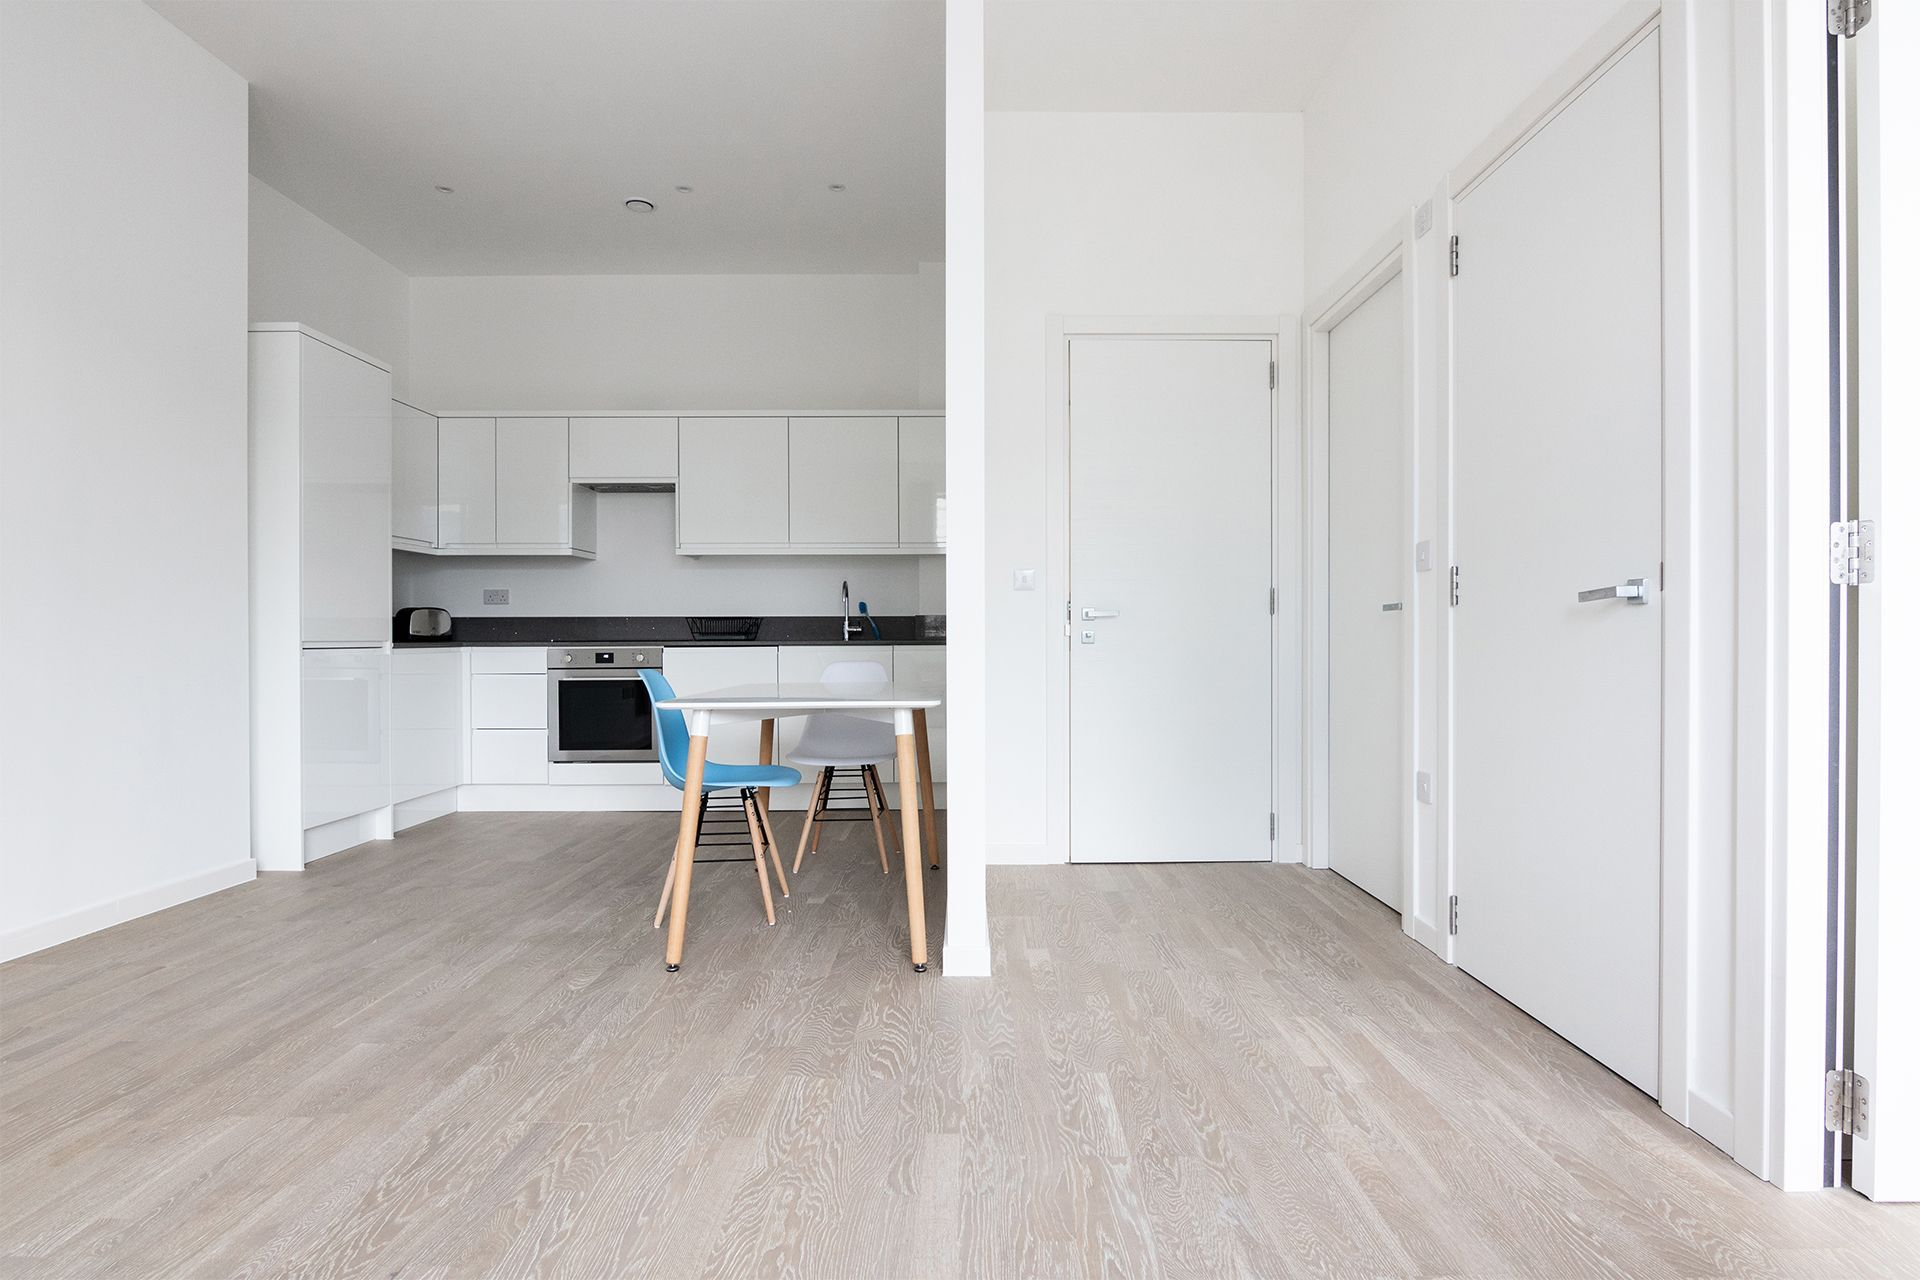 1 Bedroom apartment to rent in London VIL-SA-0006